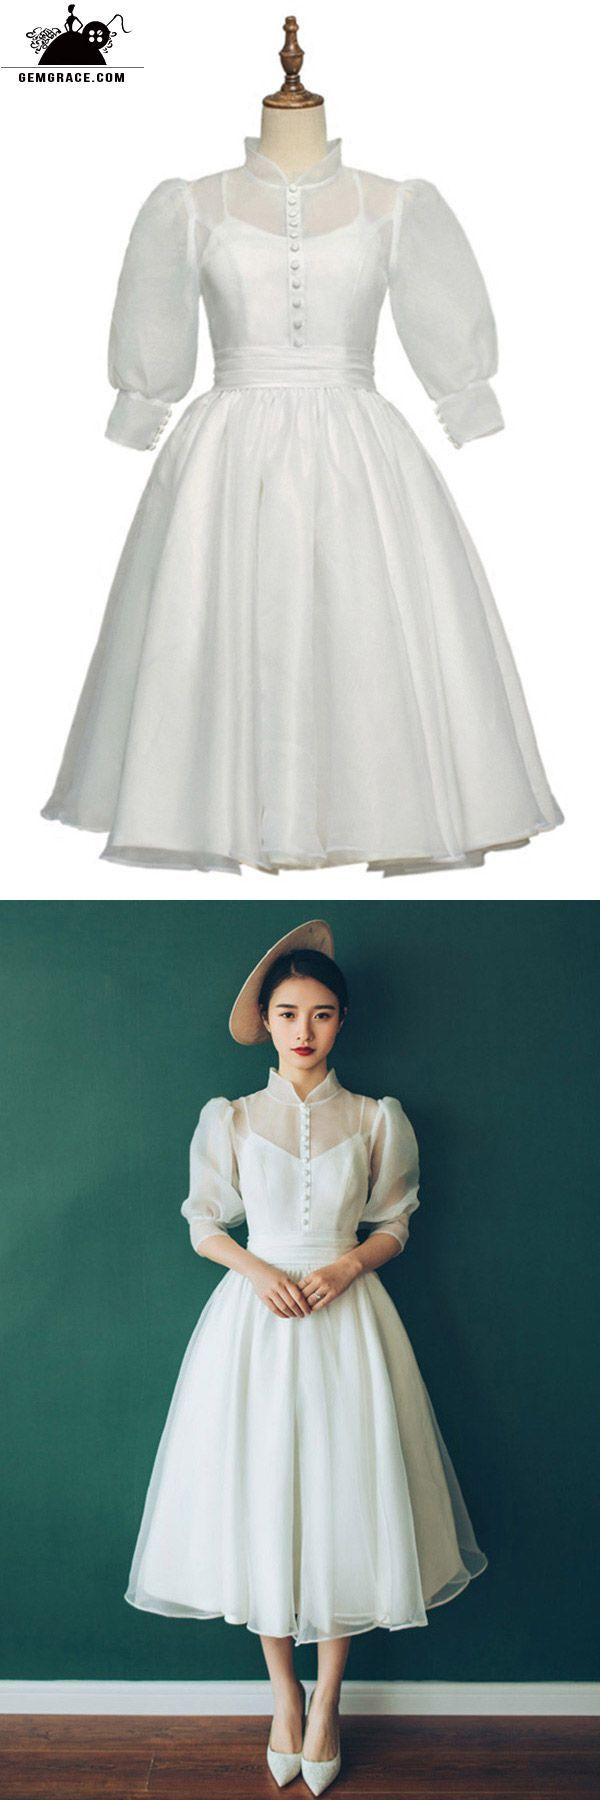 Vintage chic tea length bubble sleeves weddding dress with collar